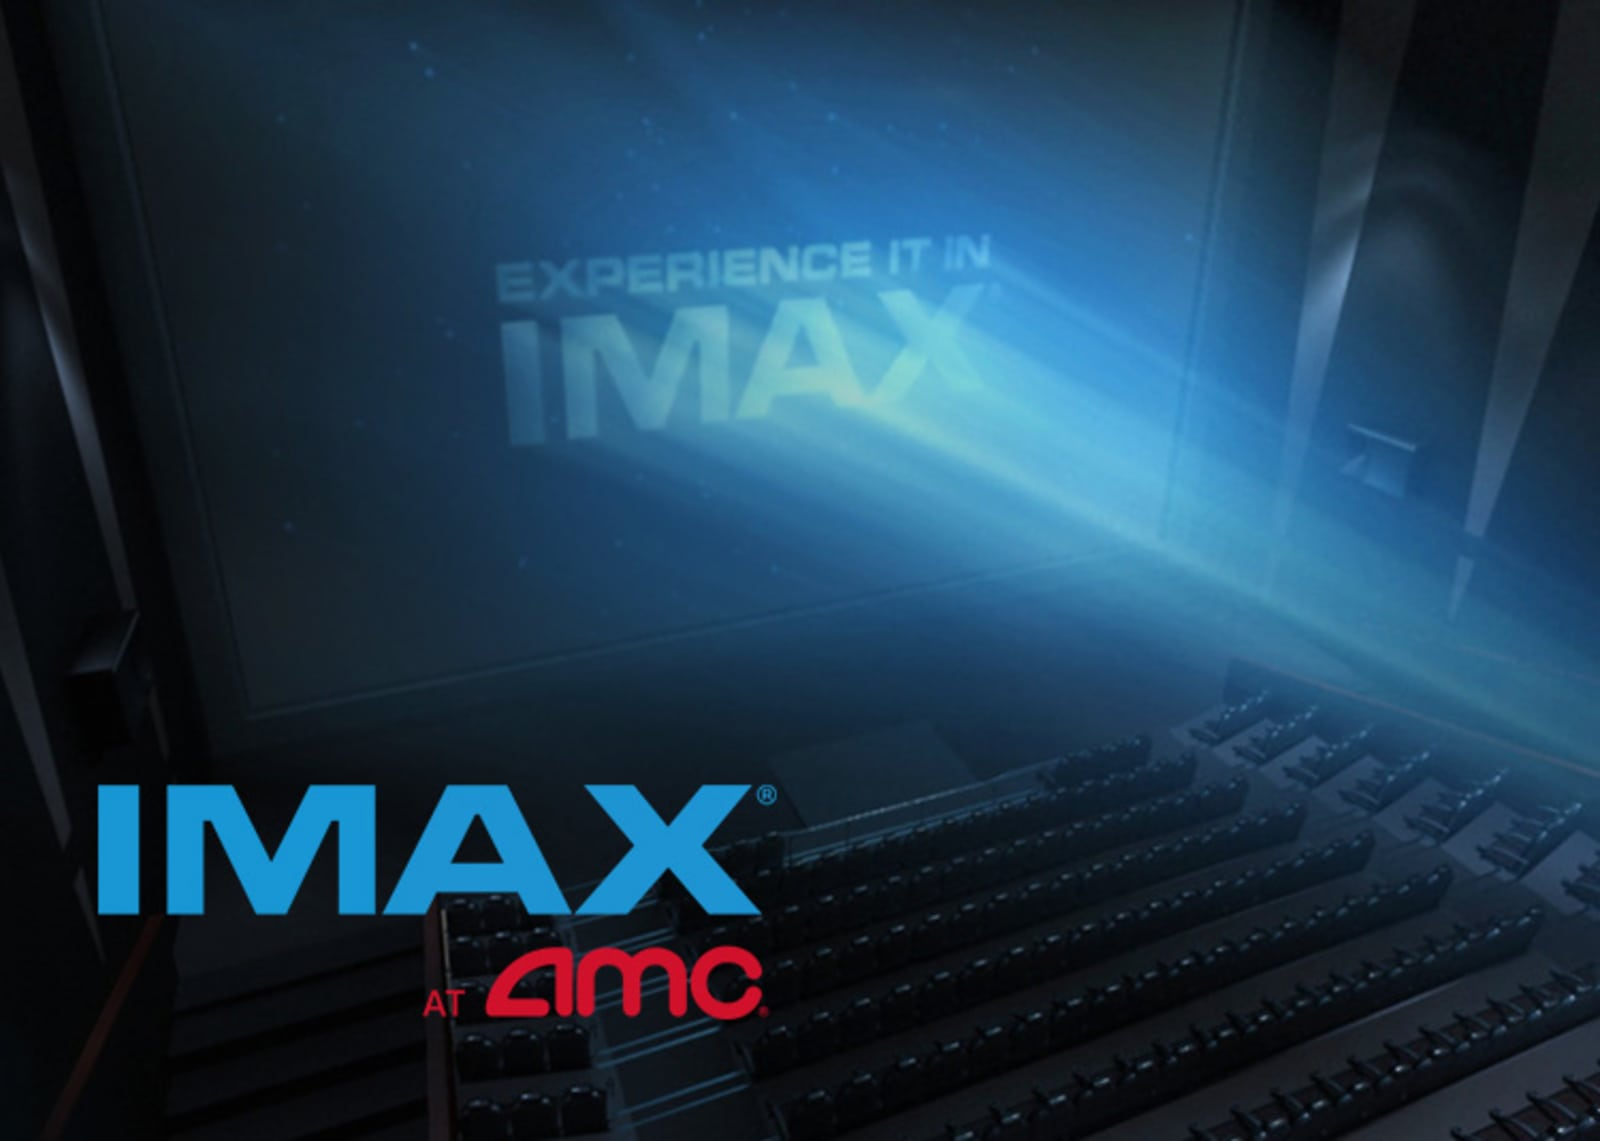 Movie times at imax